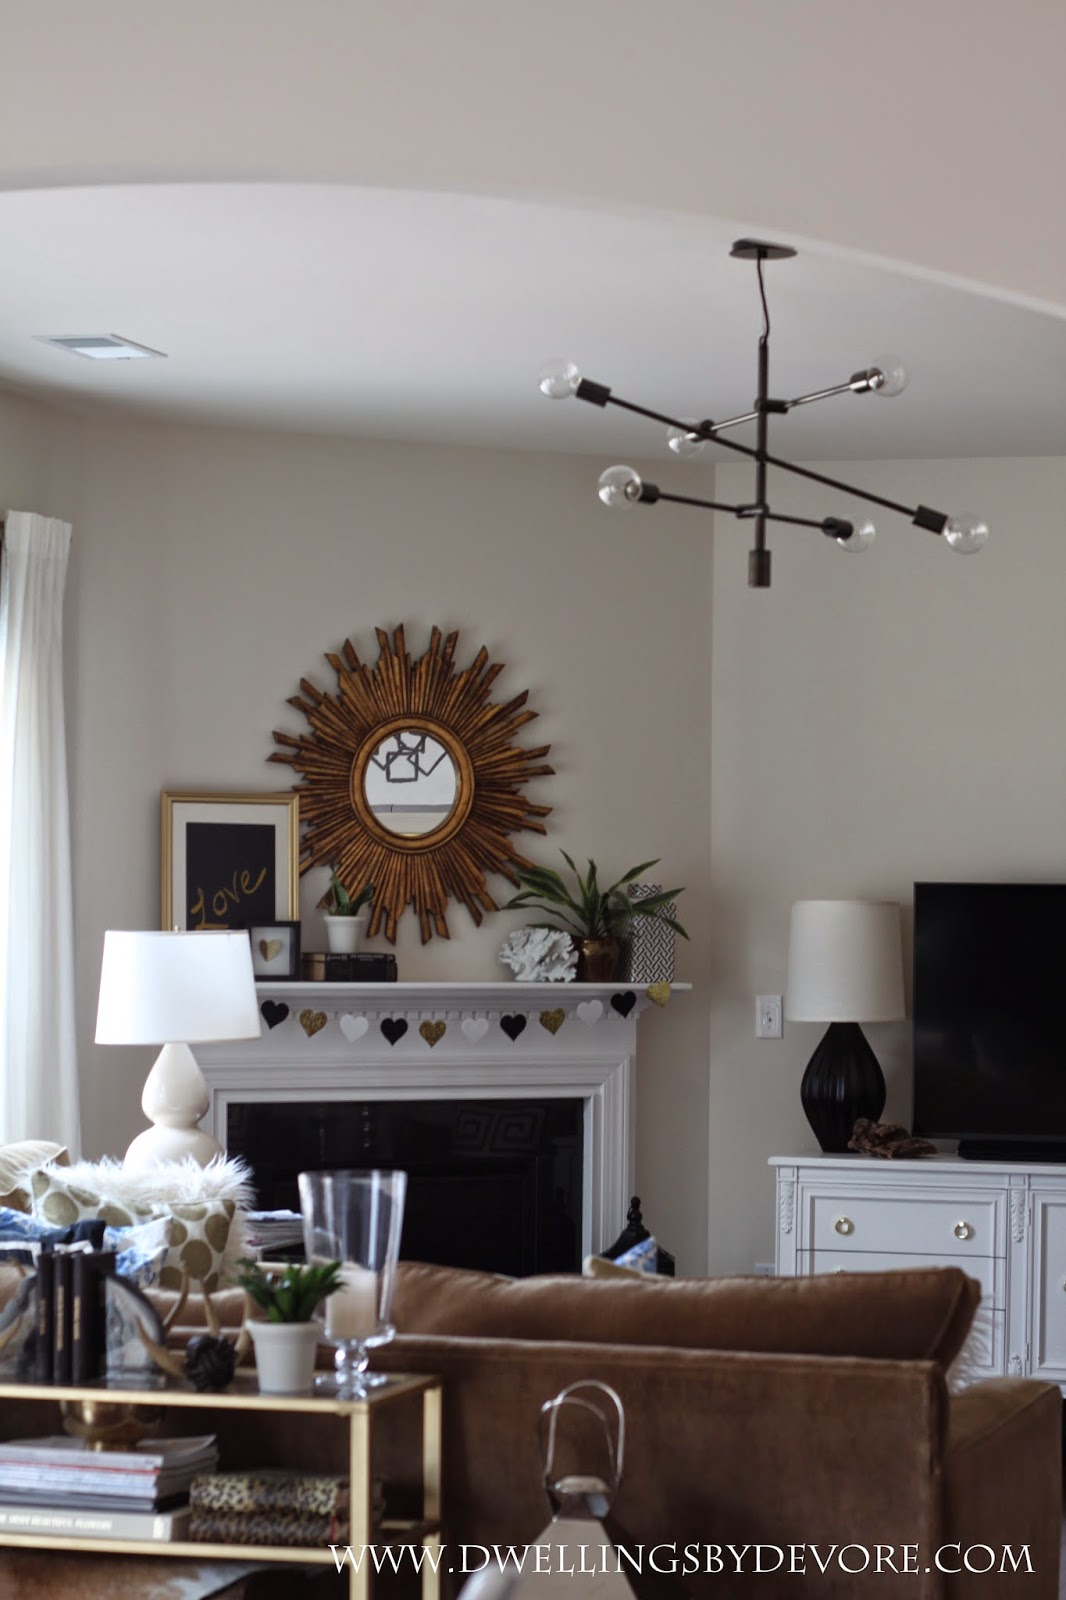 Hanging Light Fixtures Living Room Large With Corner Fireplace Dwellings By Devore: Choosing Lighting For Open Floor Plans